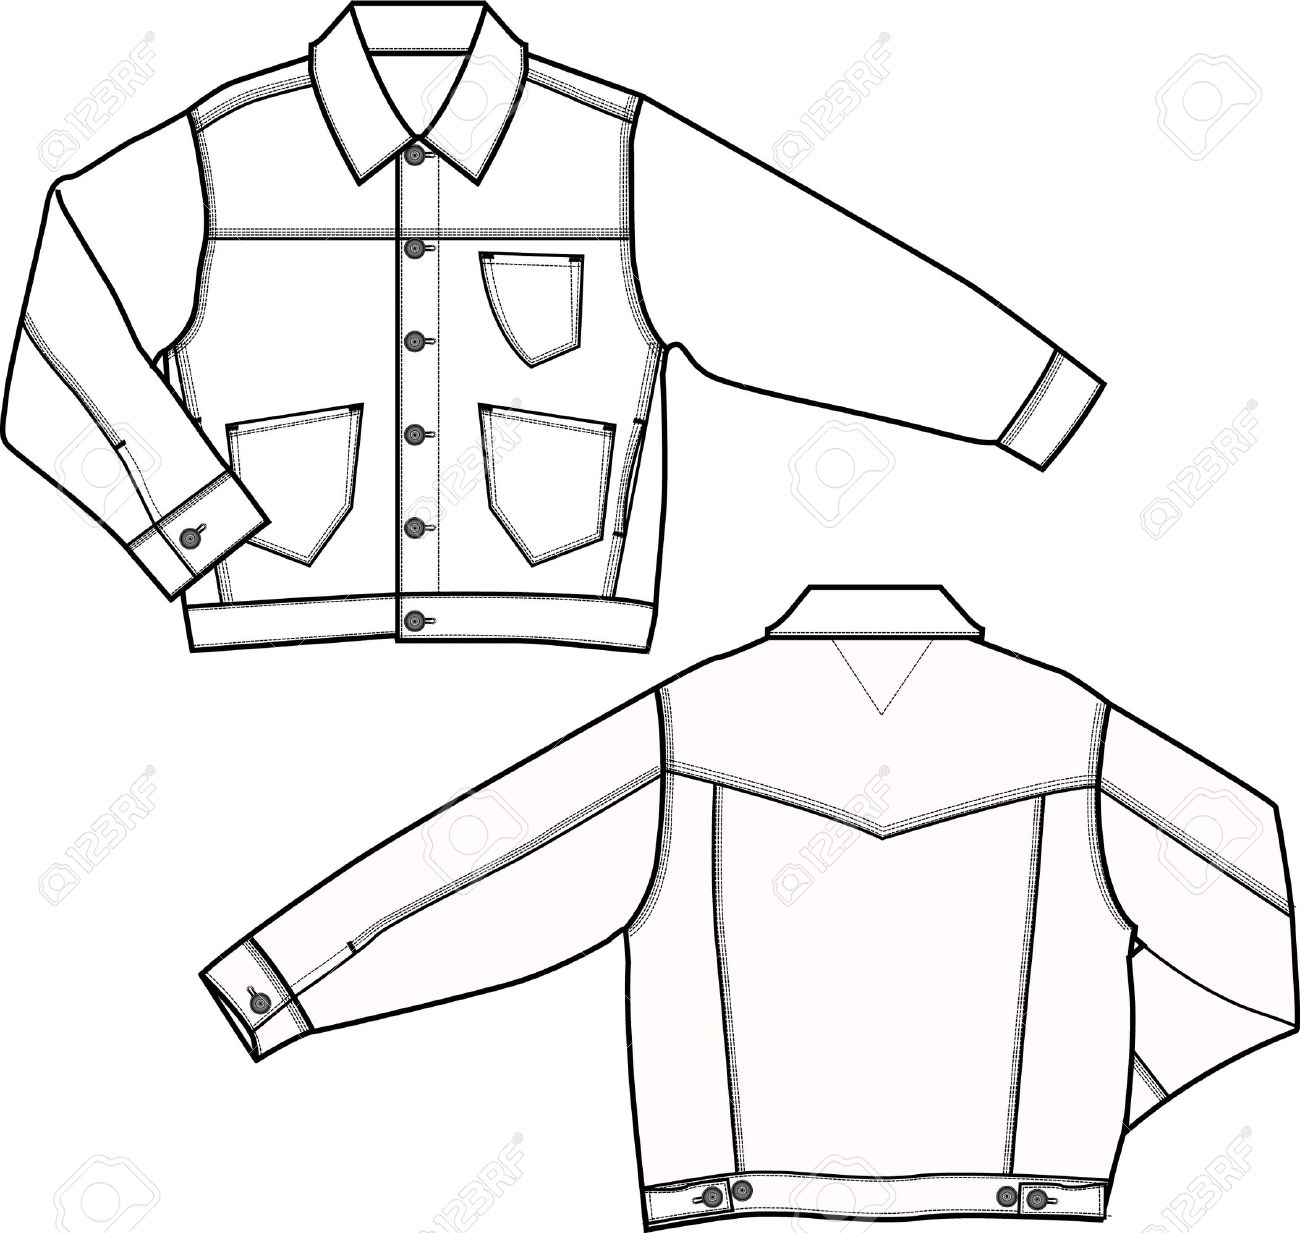 Coat Technical Drawing At Getdrawings